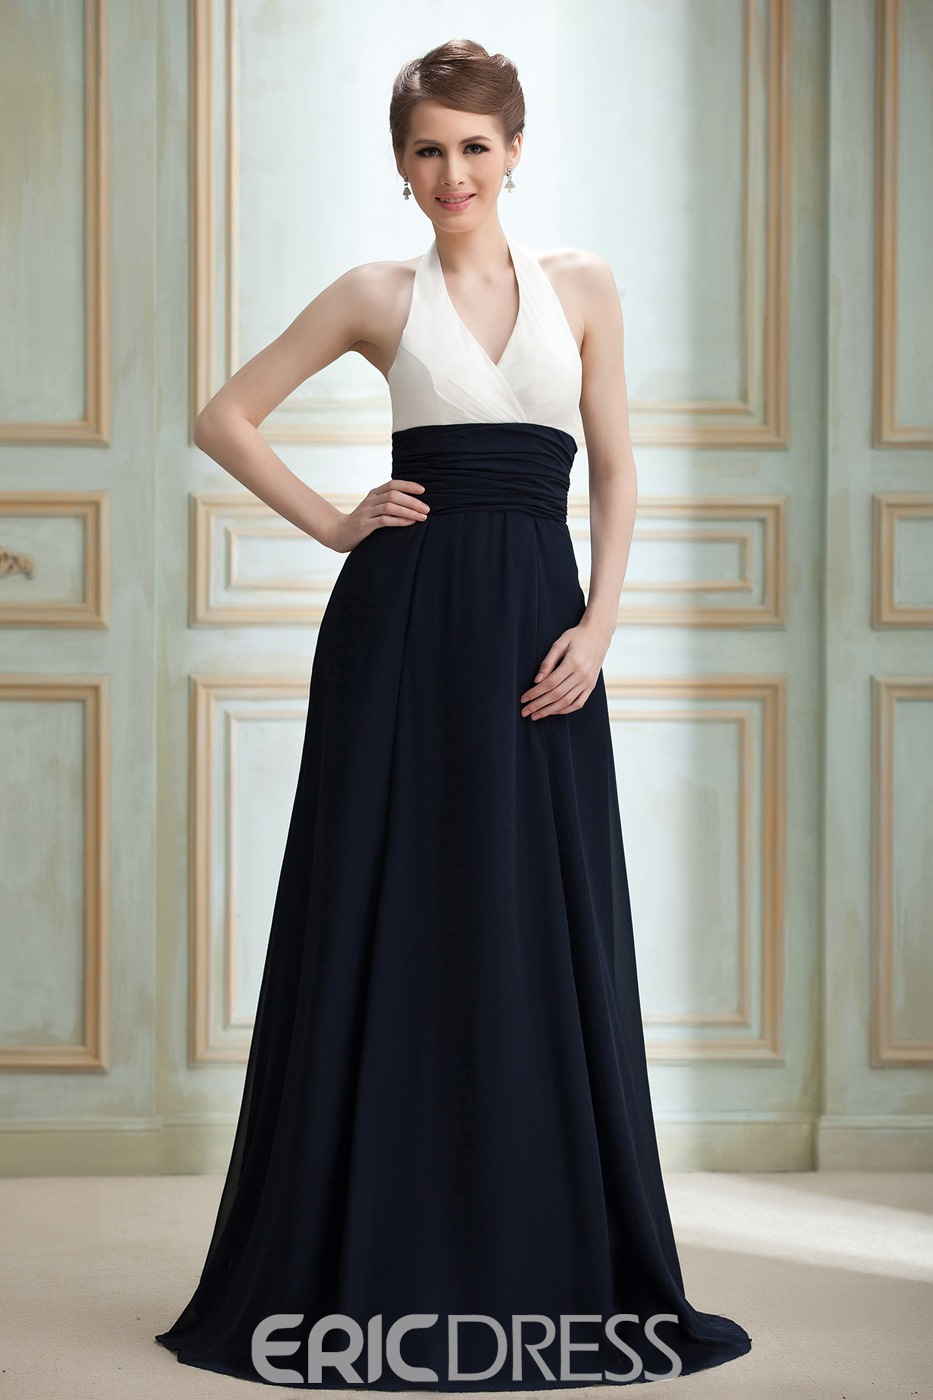 Ruched A-line Halter Foor-Length Empire Waist Nadya's Bridesmaid Dress